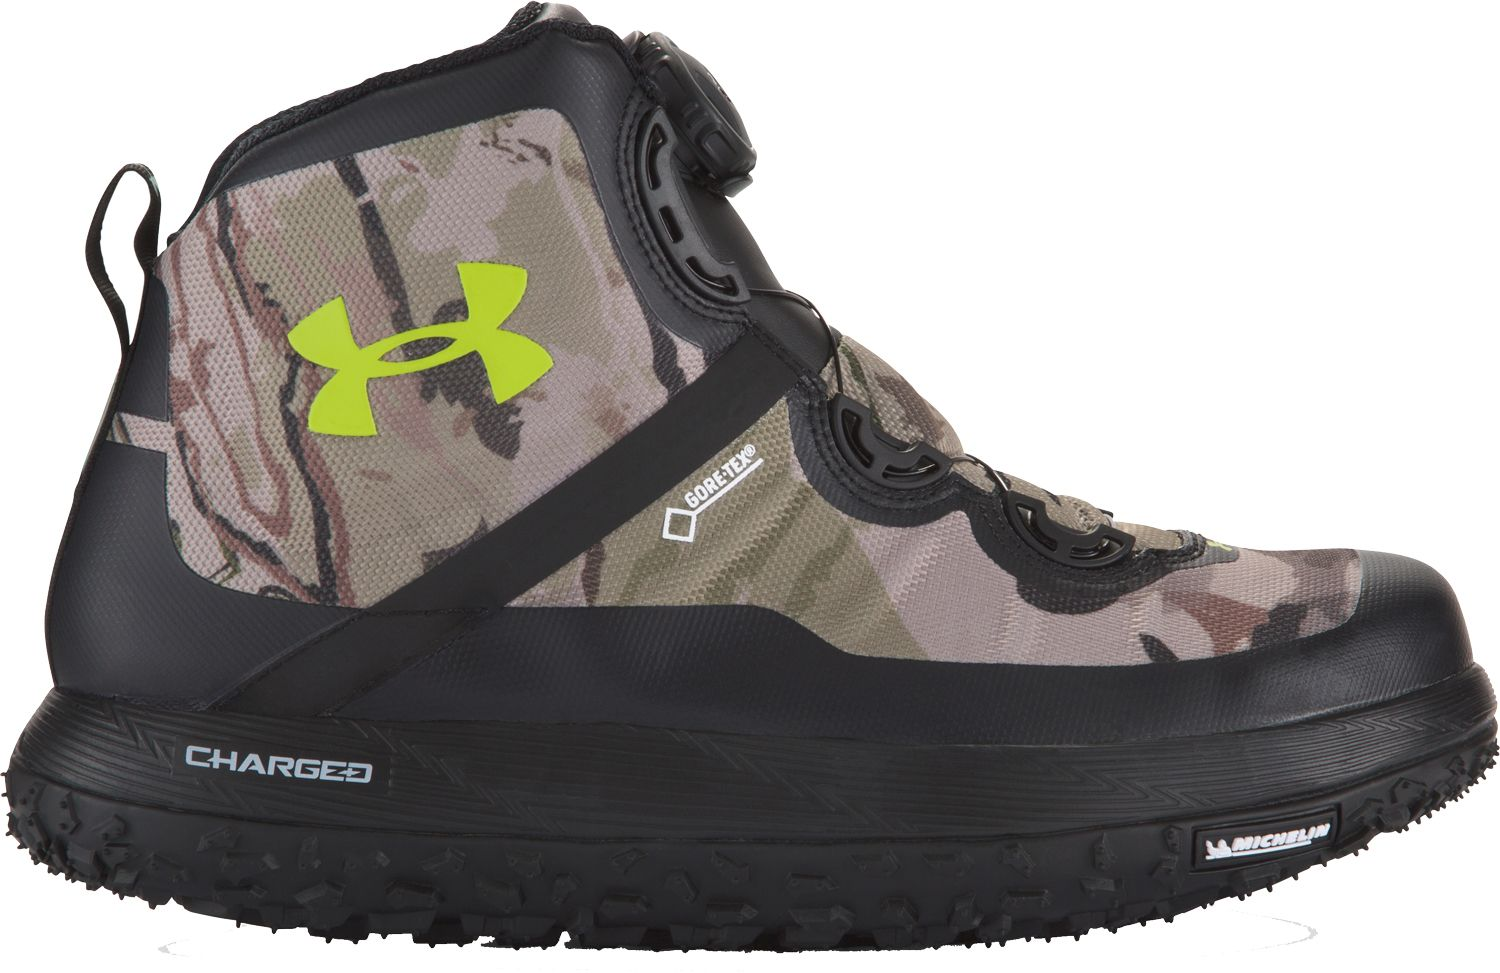 Men's Hiking Boots | DICK'S Sporting Goods